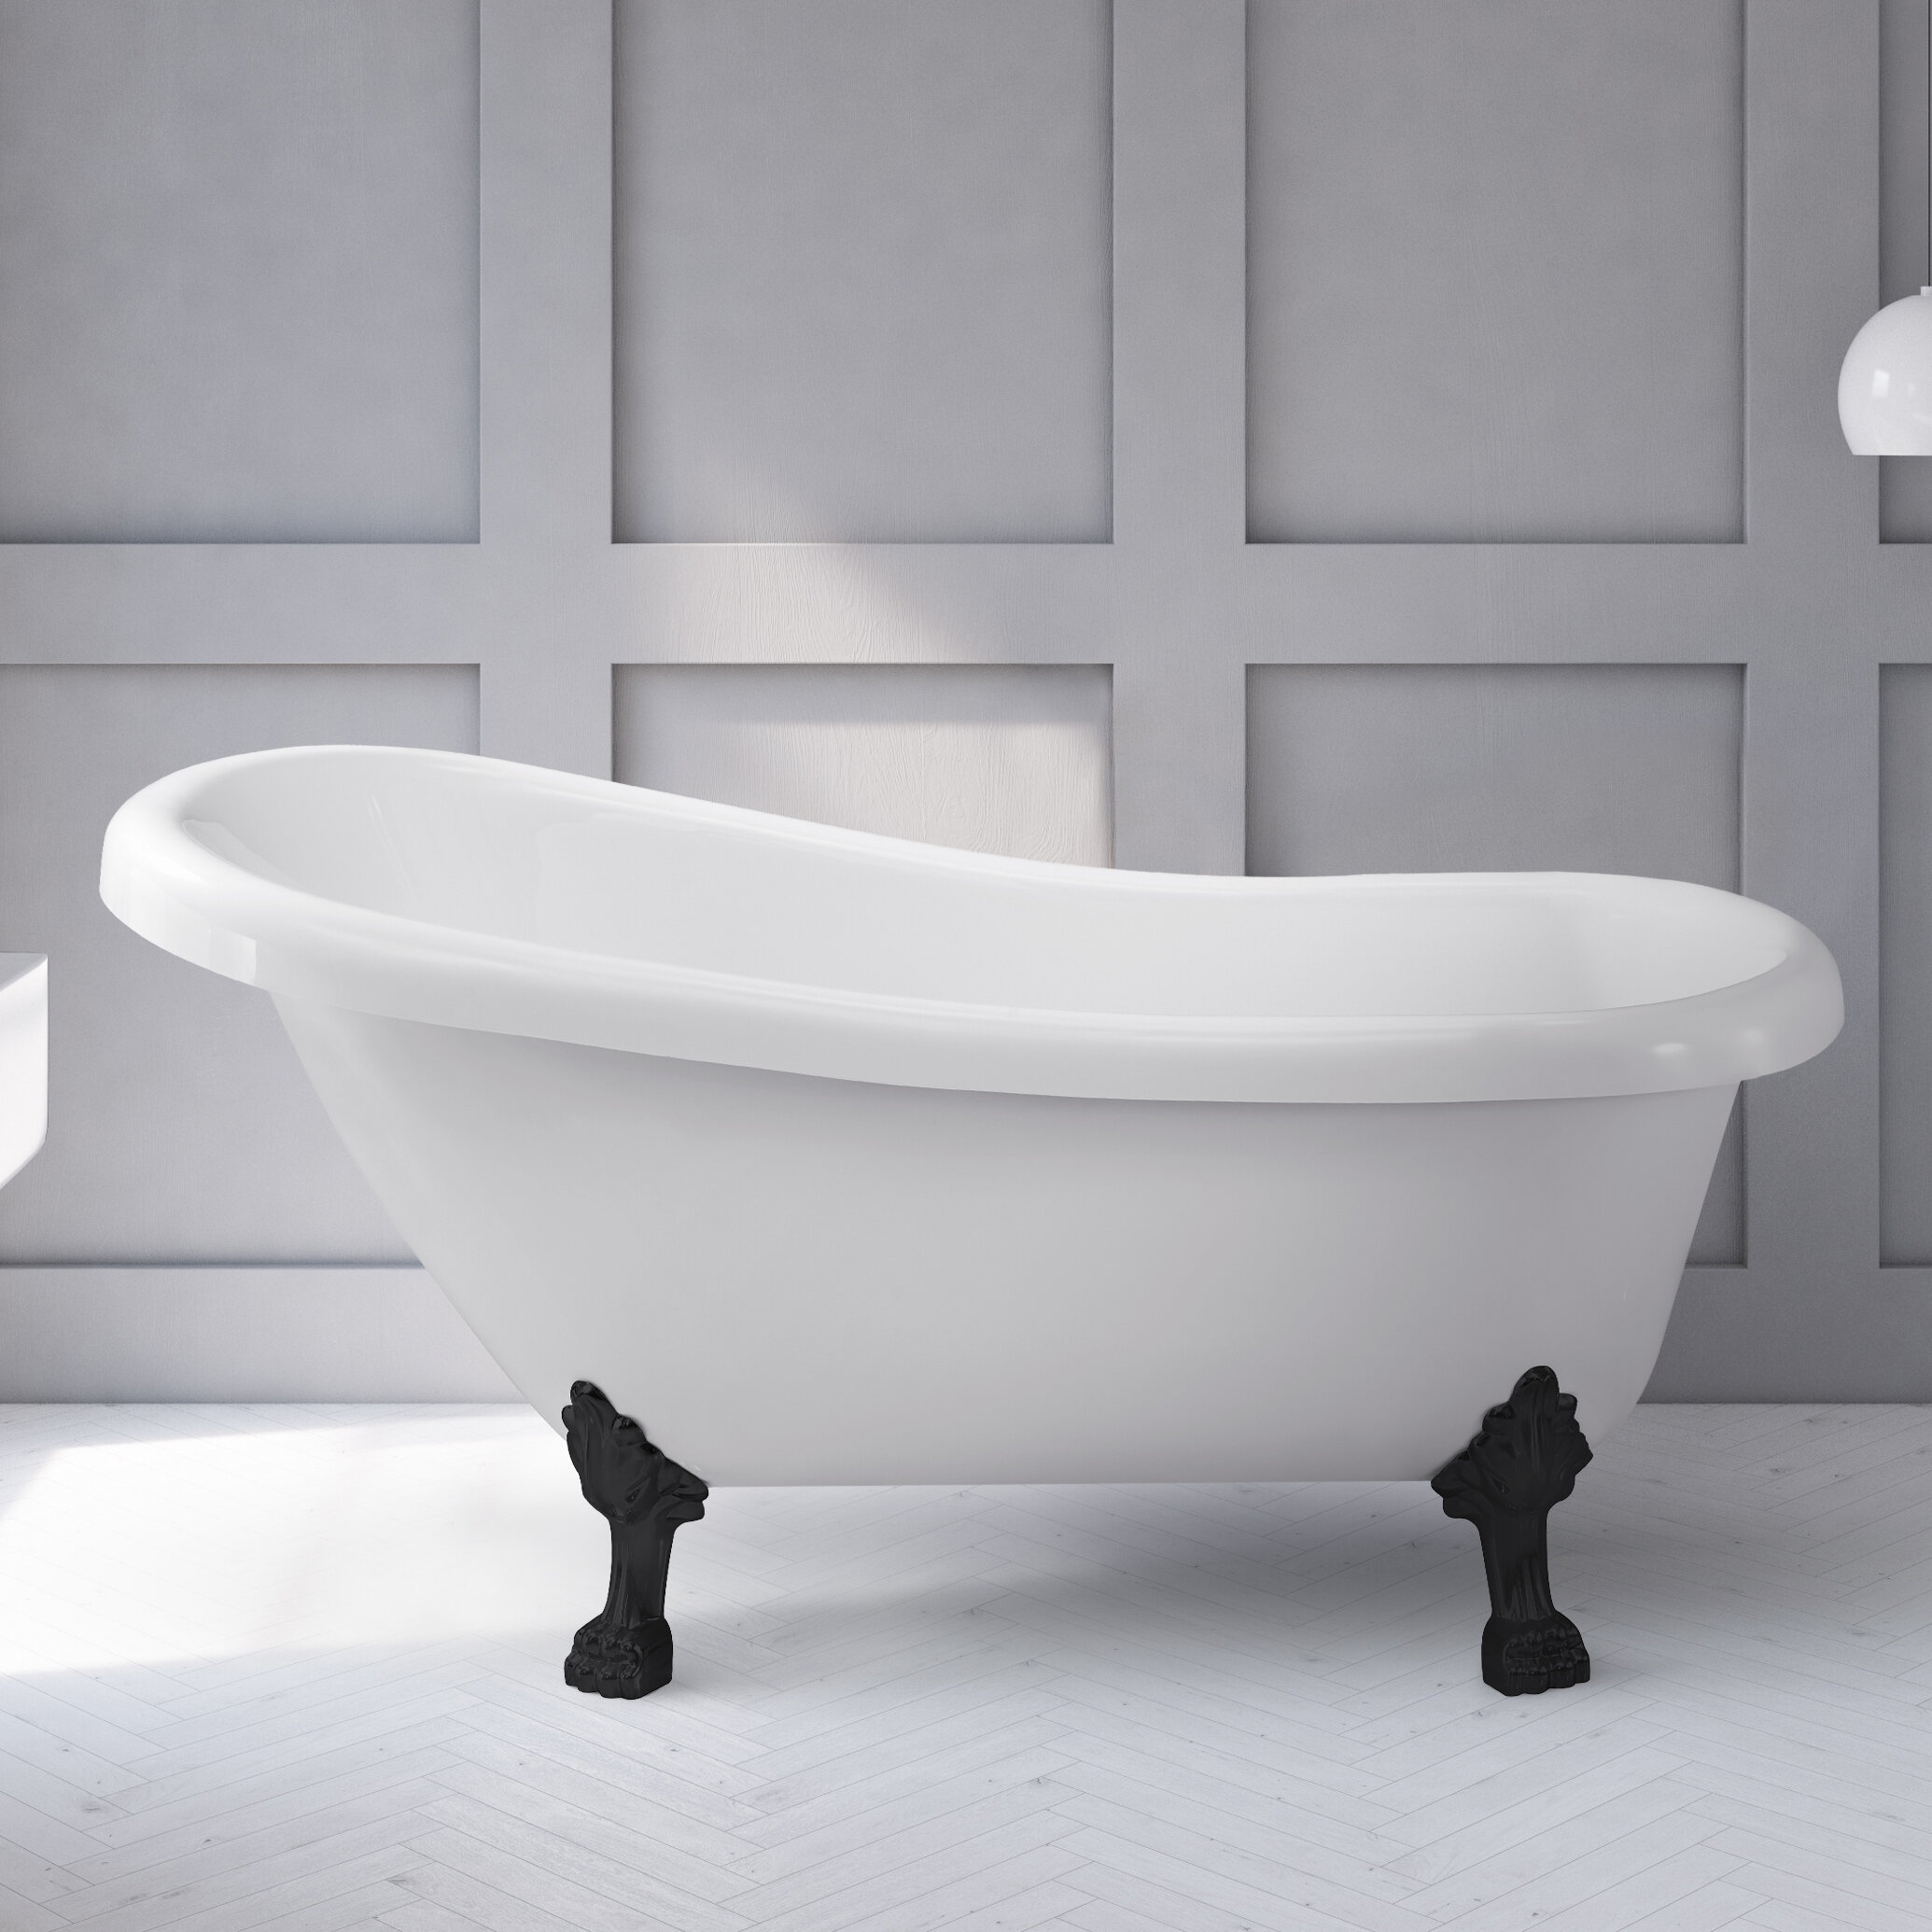 Streamlinebath 61 X 28 Clawfoot Soaking Acrylic Bathtub Reviews Wayfair